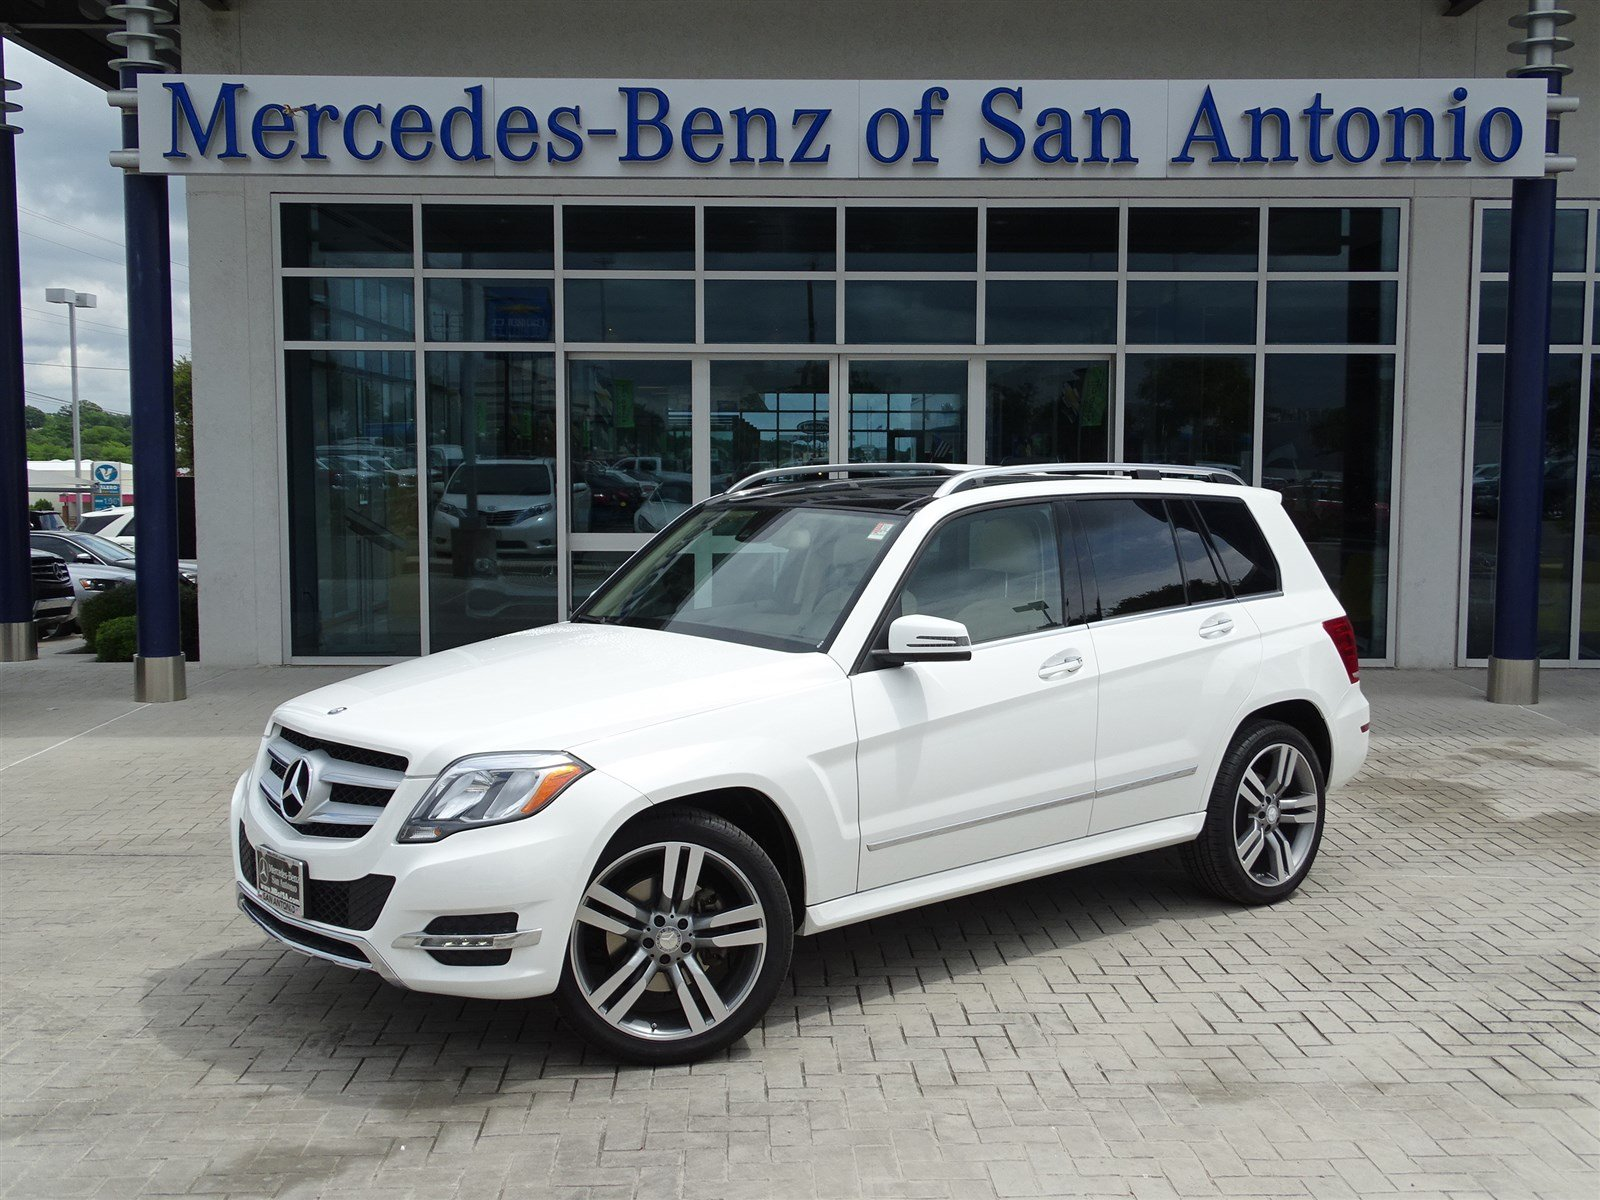 Certified pre owned vehicles for sale santa monica ca for Mercedes benz pre owned vehicles